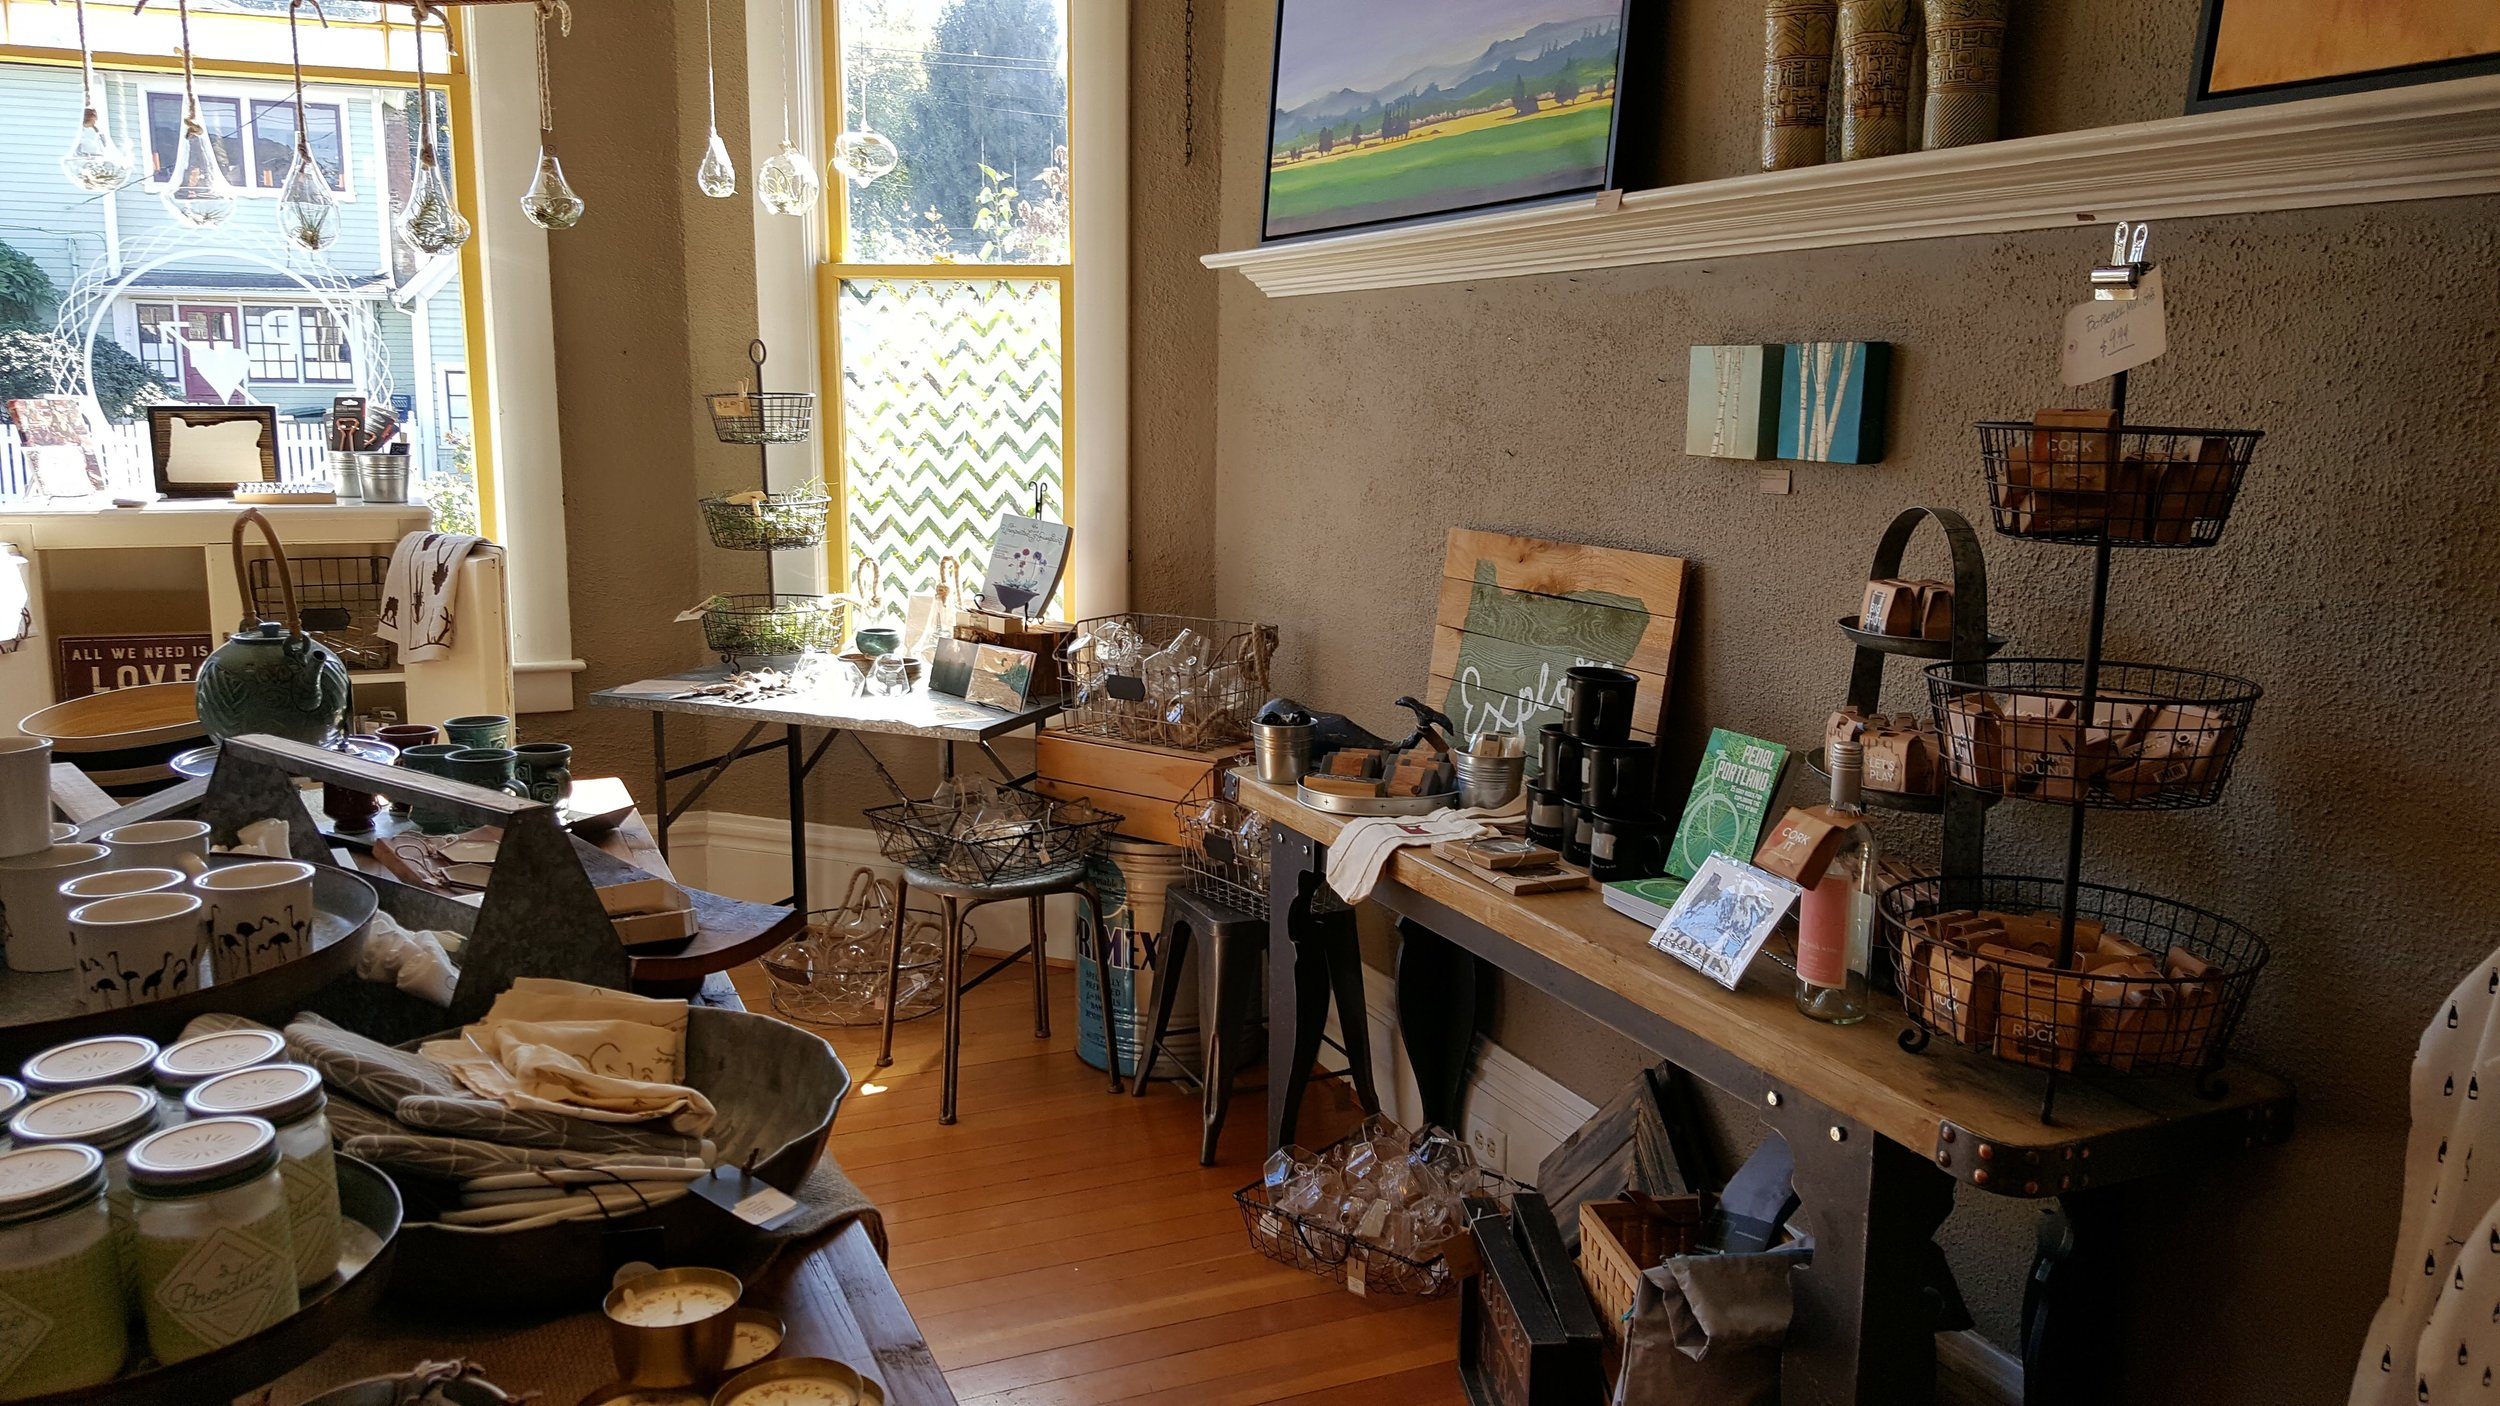 The dining room is stocked with home goods and accessories